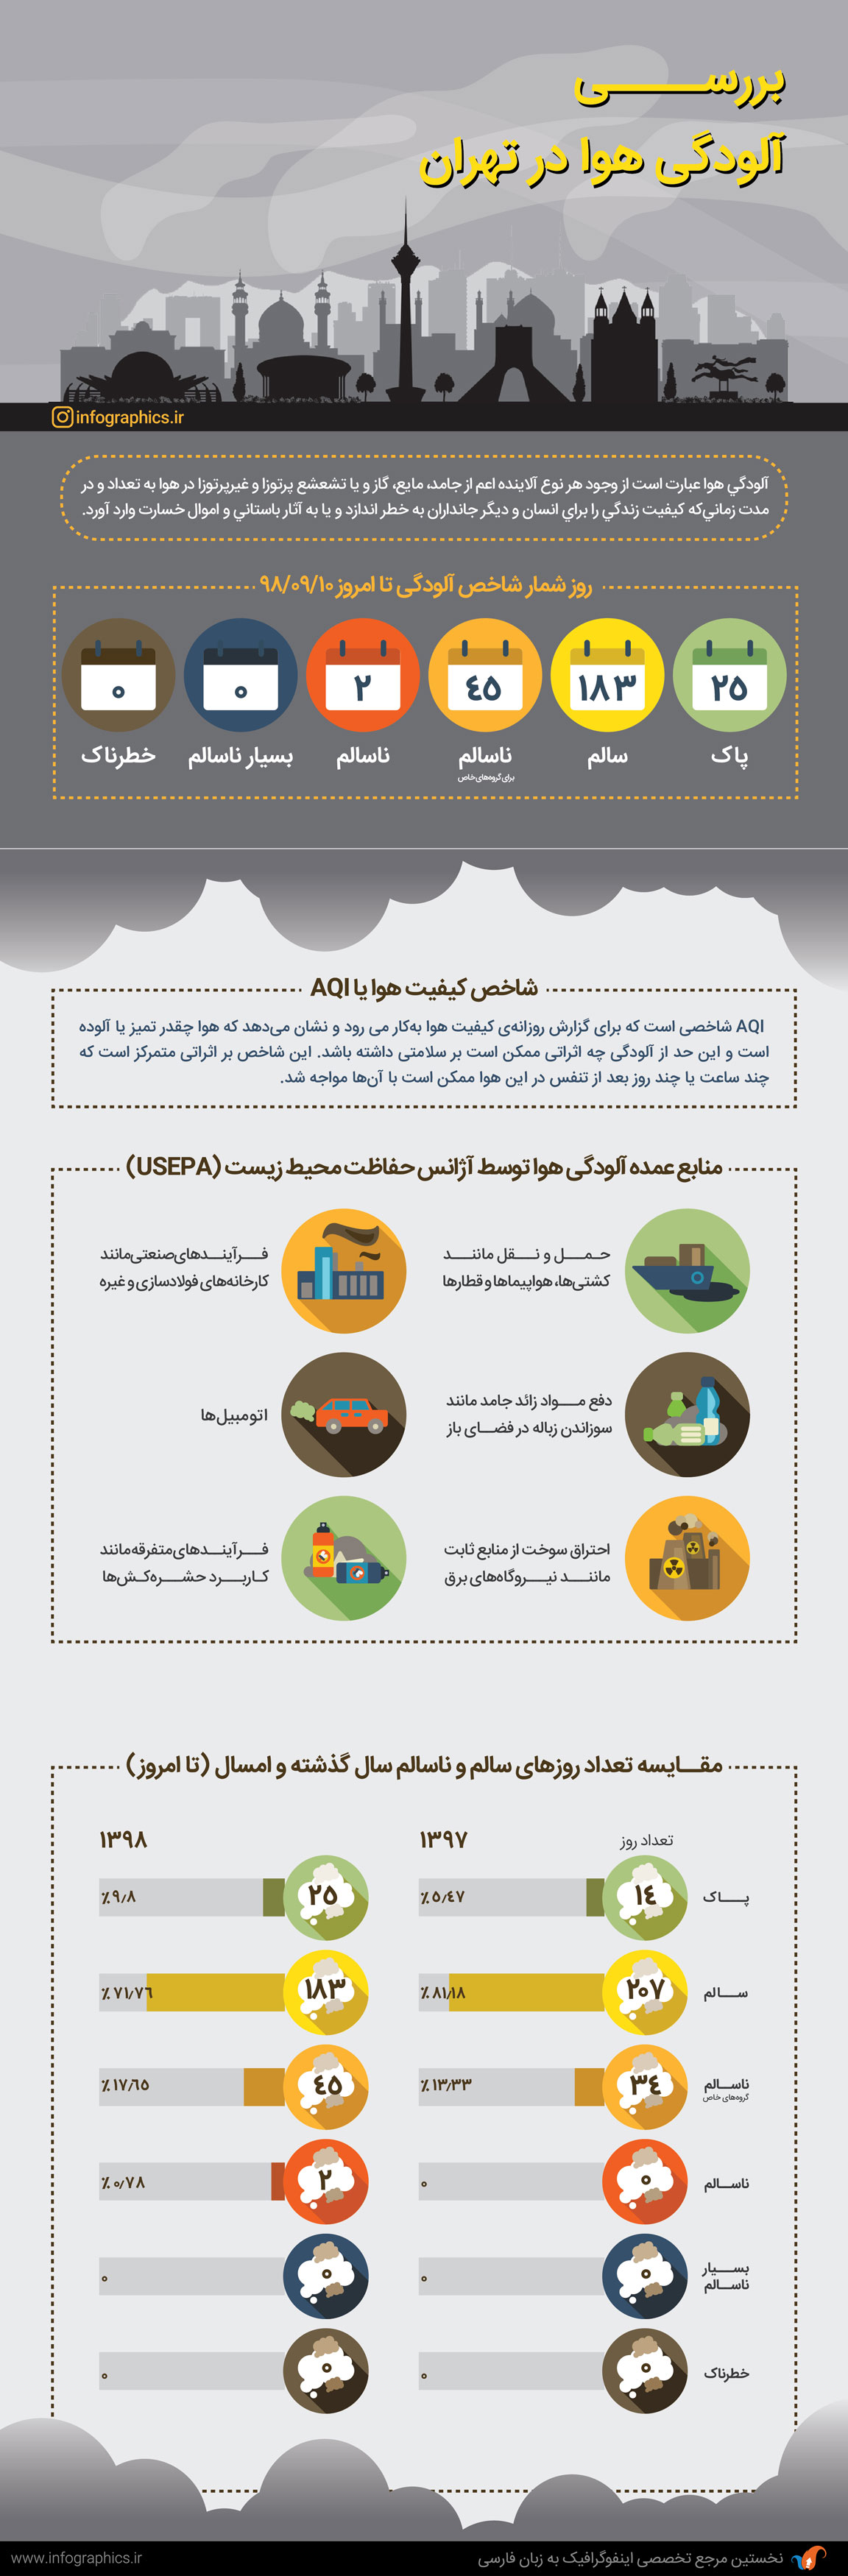 pollution-infographic